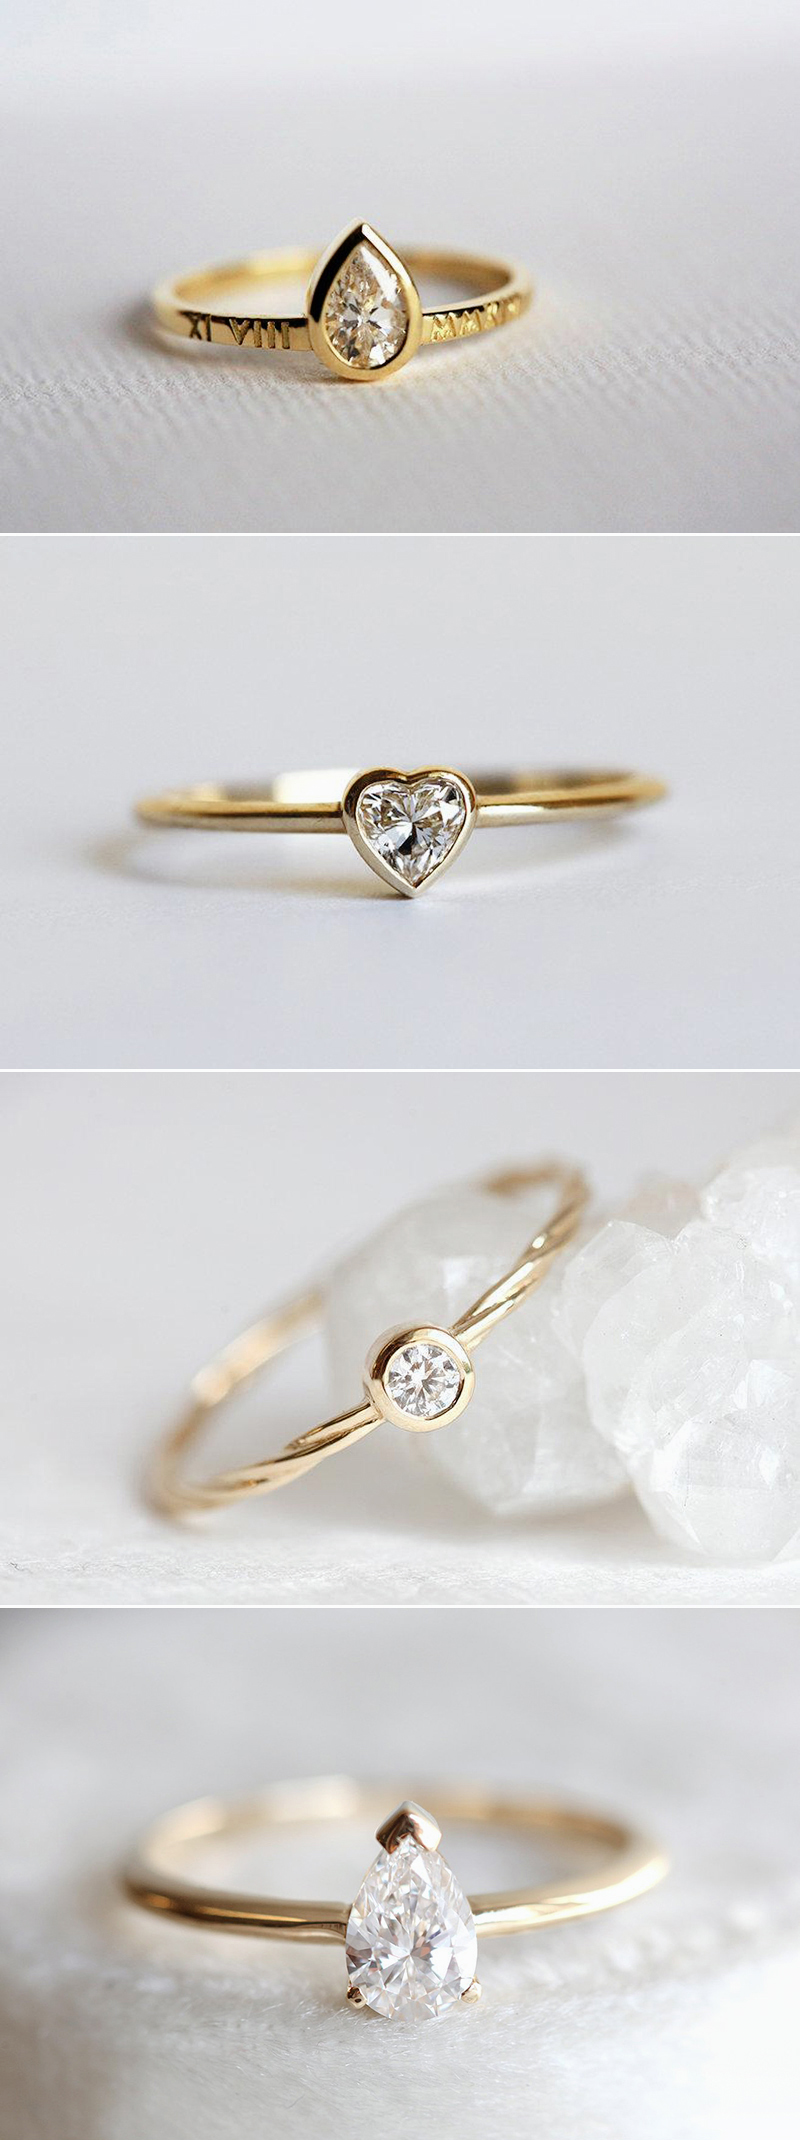 Engagement ring trends Yellow Gold Minimalist Solitaire